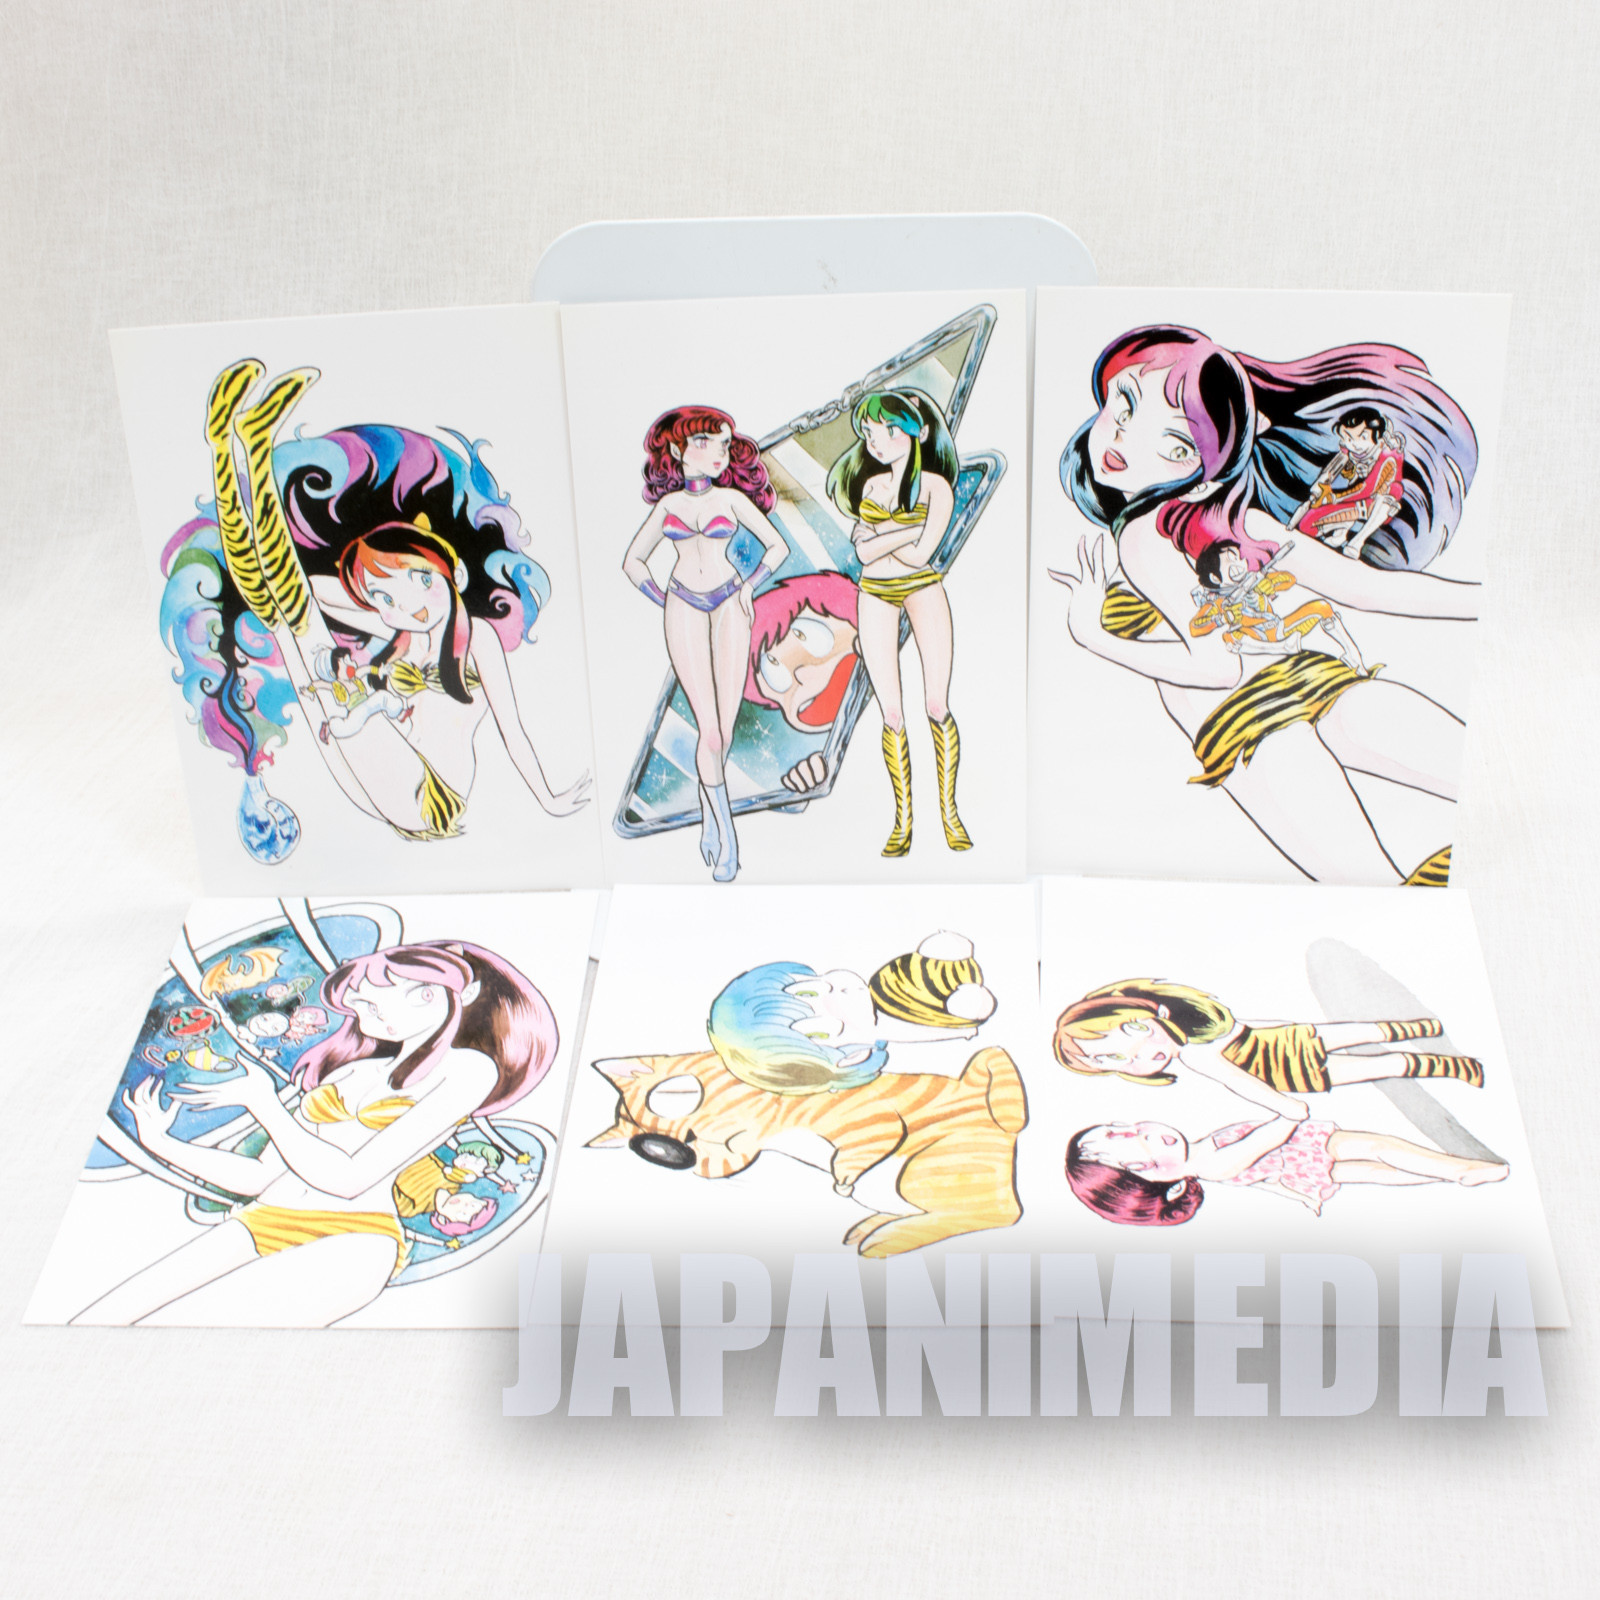 Urusei Yatsura Post Card 6pc Set JAPAN ANIME